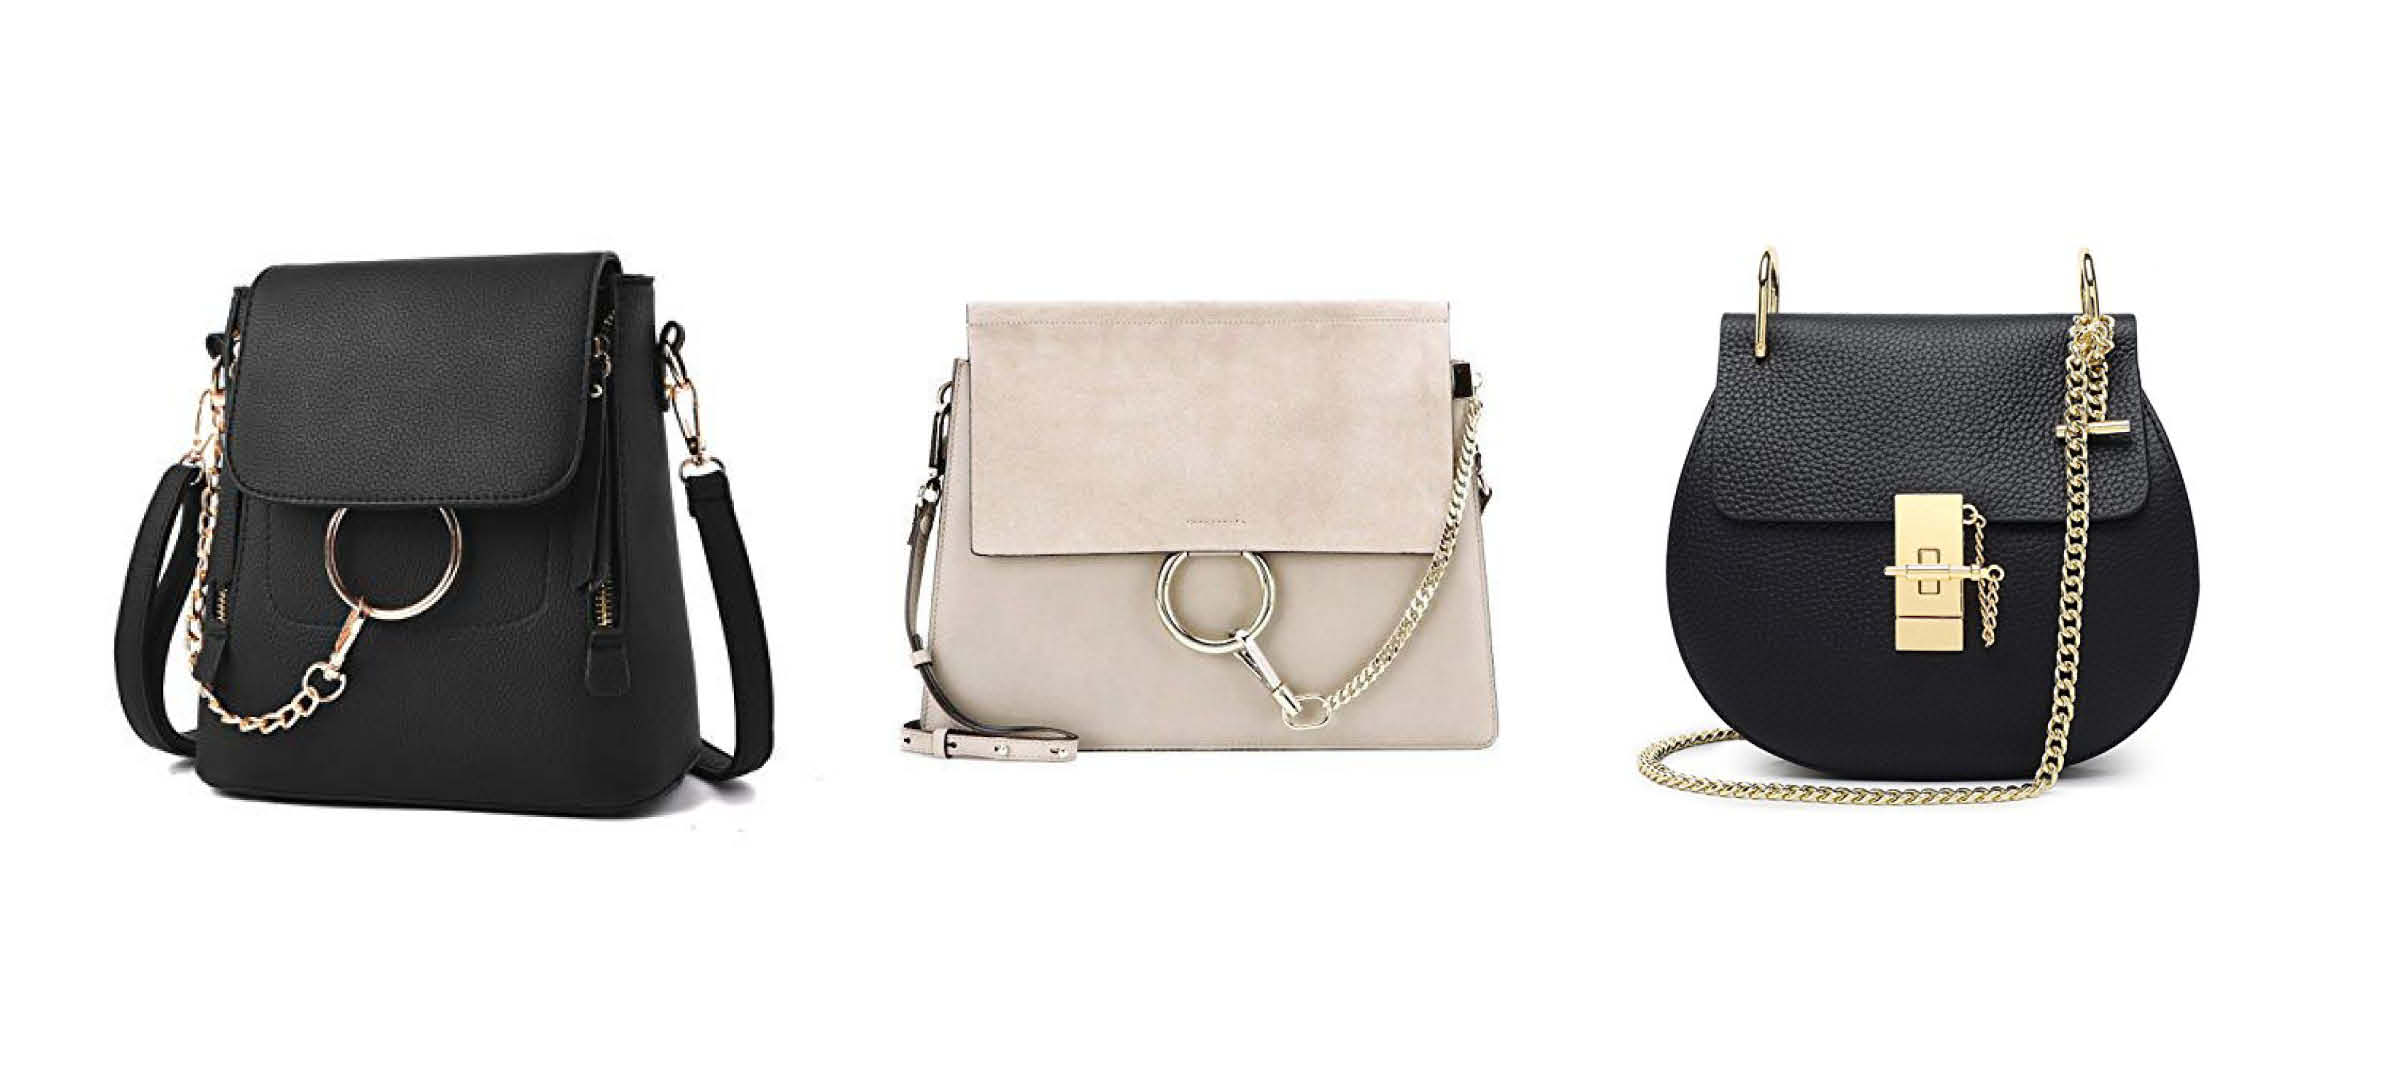 73a15a6afe Chloé dupes on Amazon that won't break the bank. Gorgeous Faye, Marcie